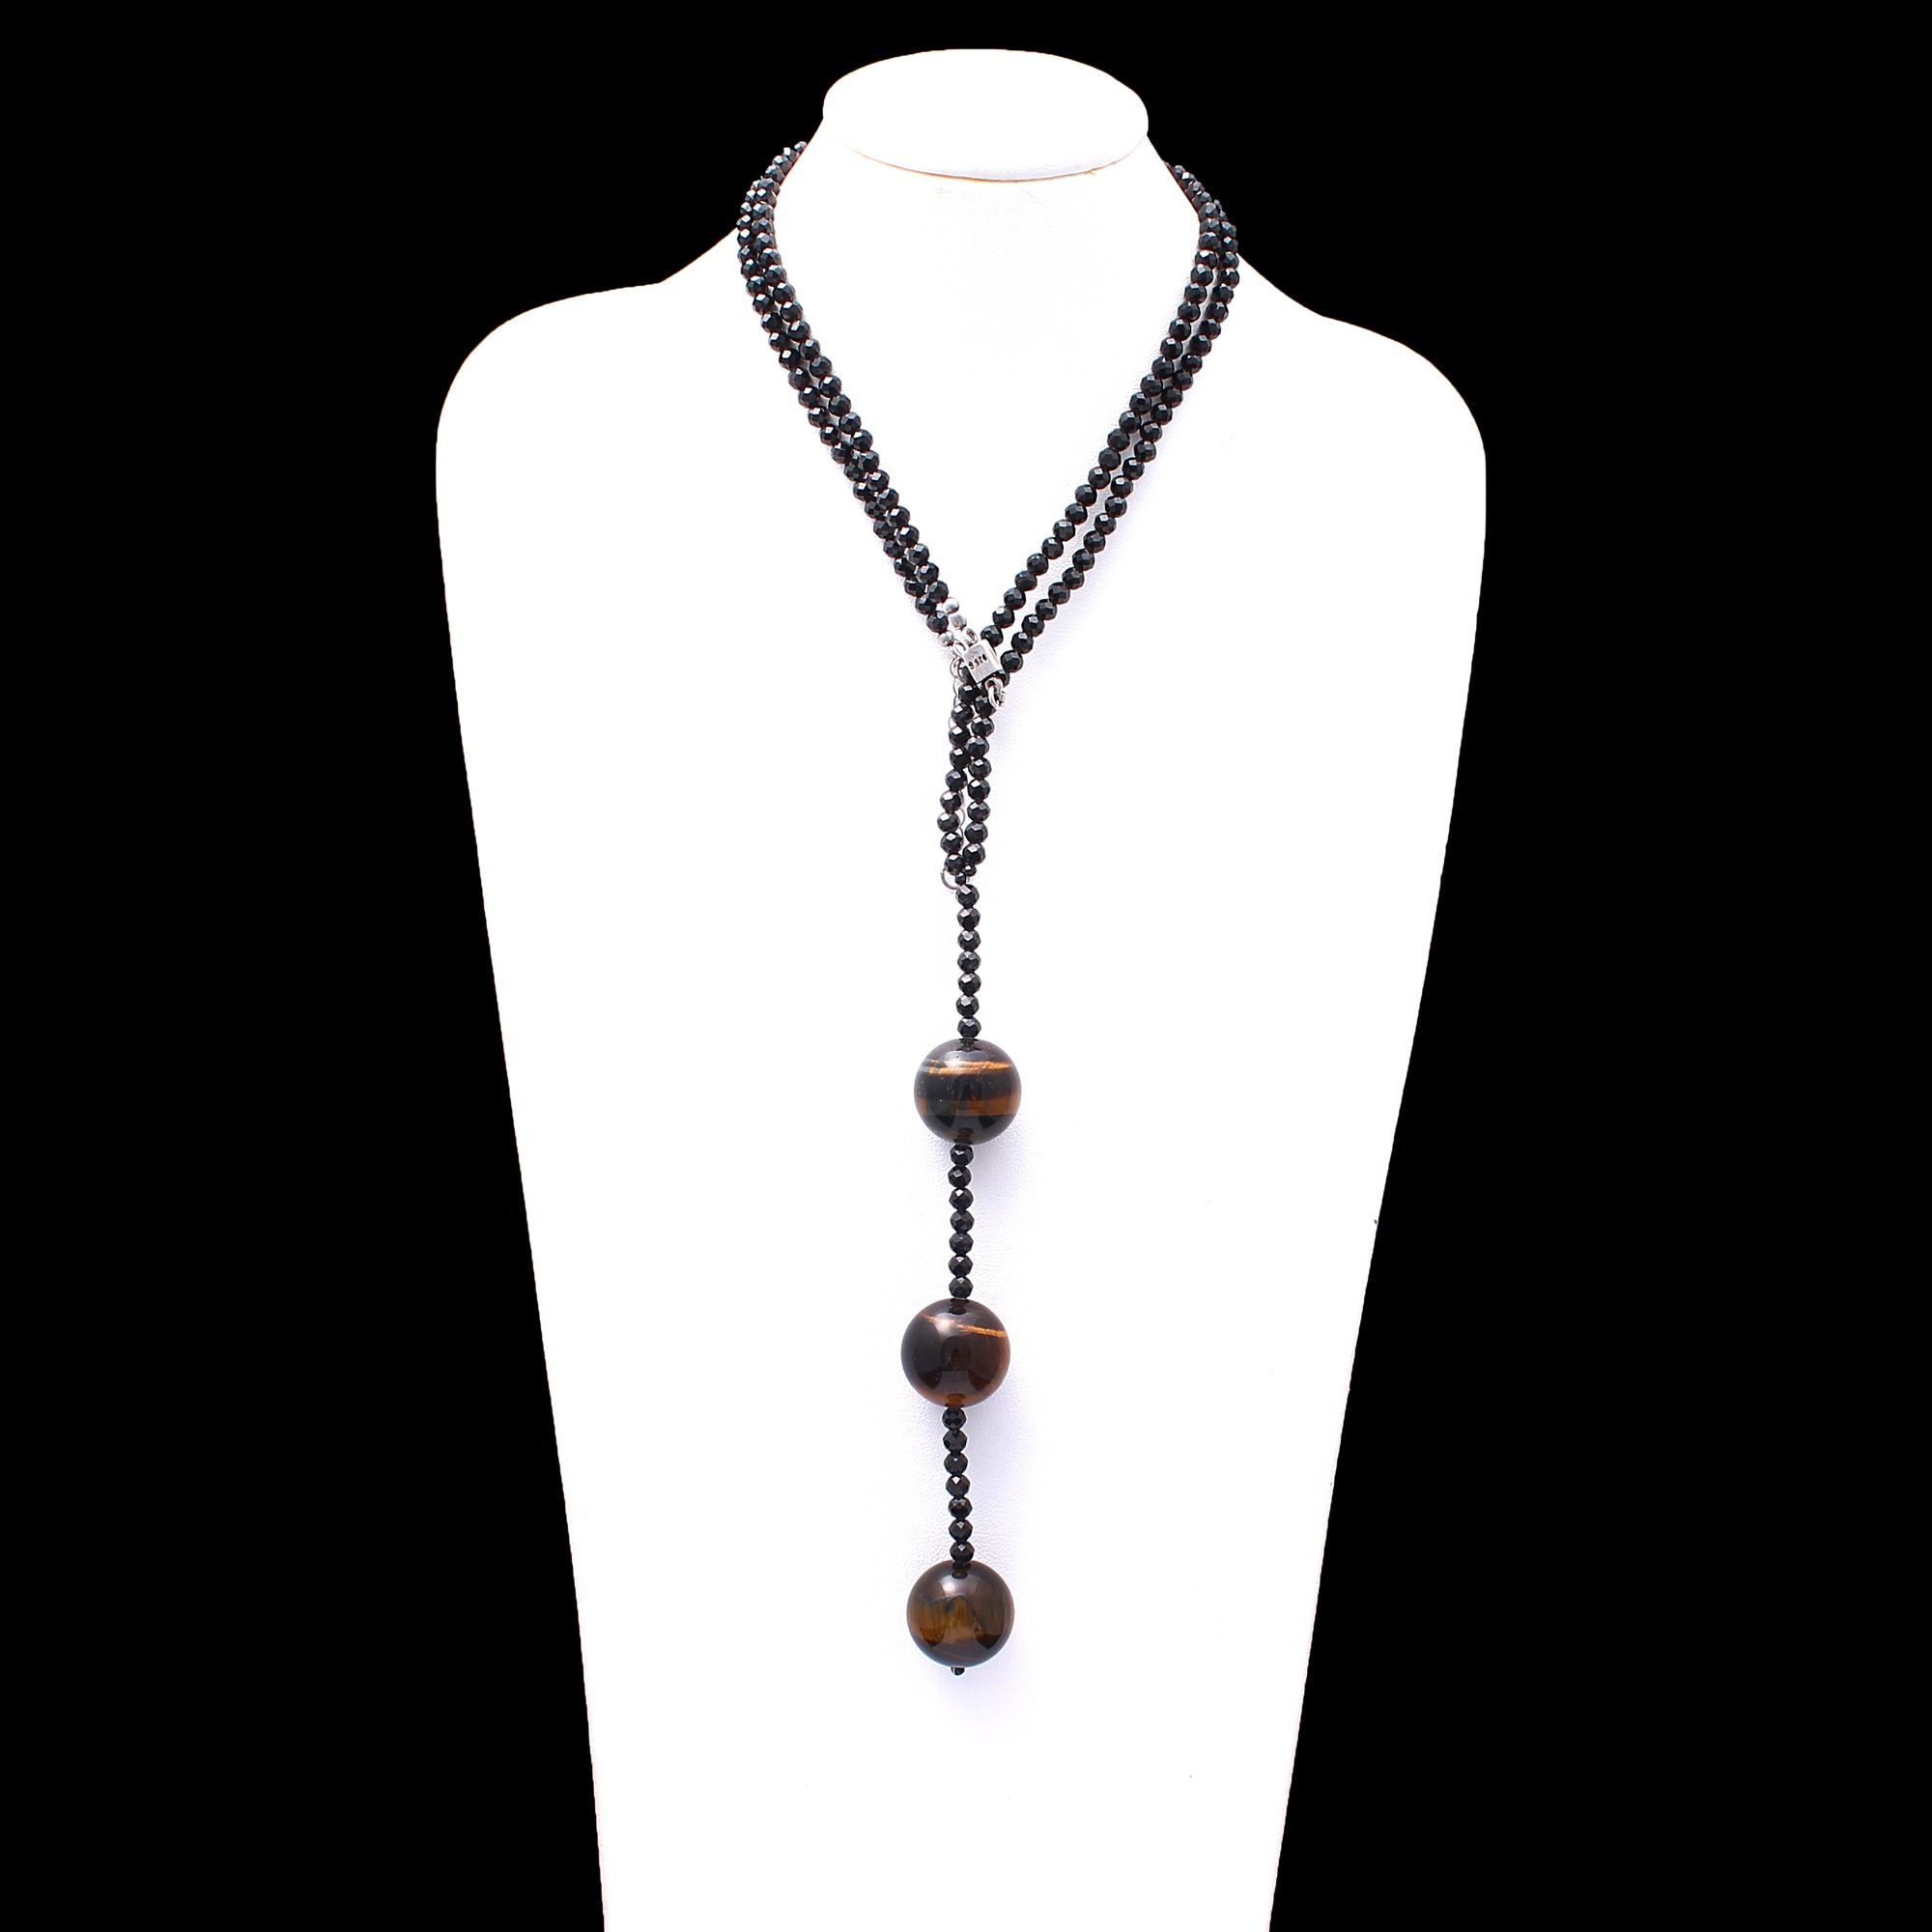 Beautiful Exotic Natural 4ミリメートルBlack Spinel Faceted Round Beads Tiger Eye Ball Handmade Tie Knot Style Gemstone Necklace